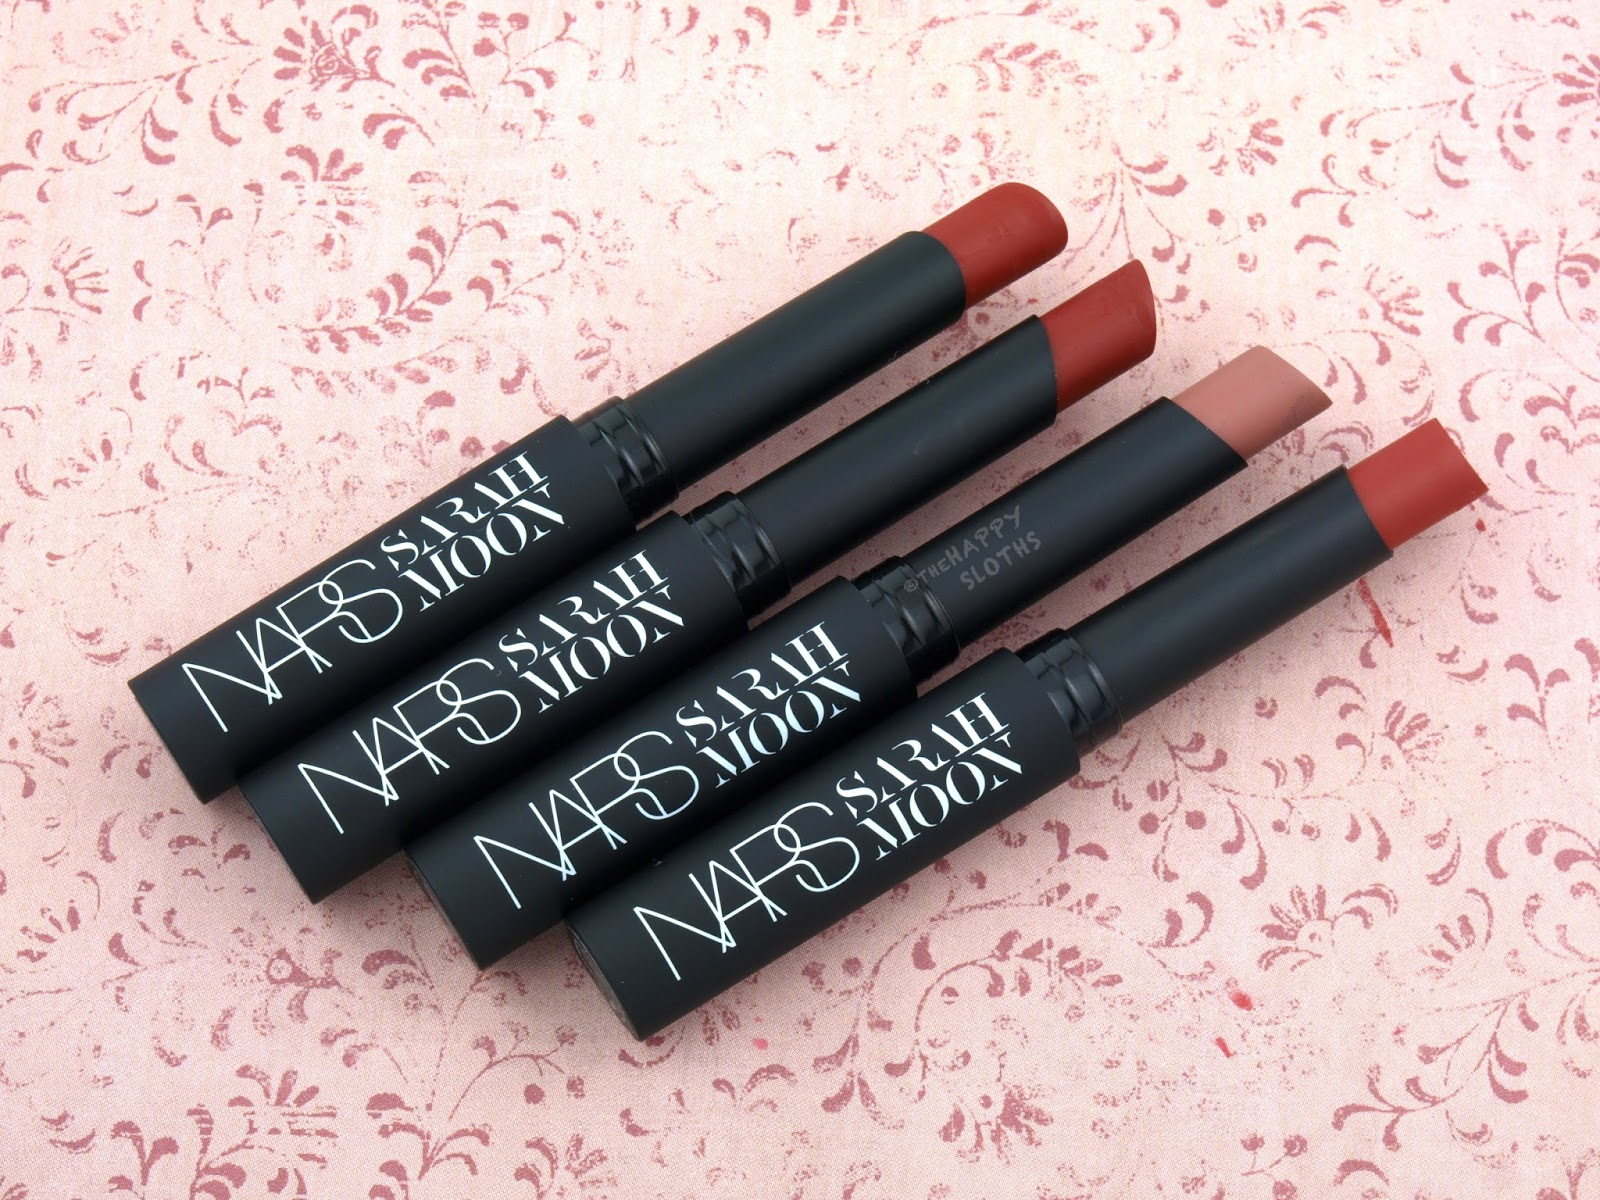 NARS Holiday 2016 Sarah Moon Matte Lipstick Review and Swatches